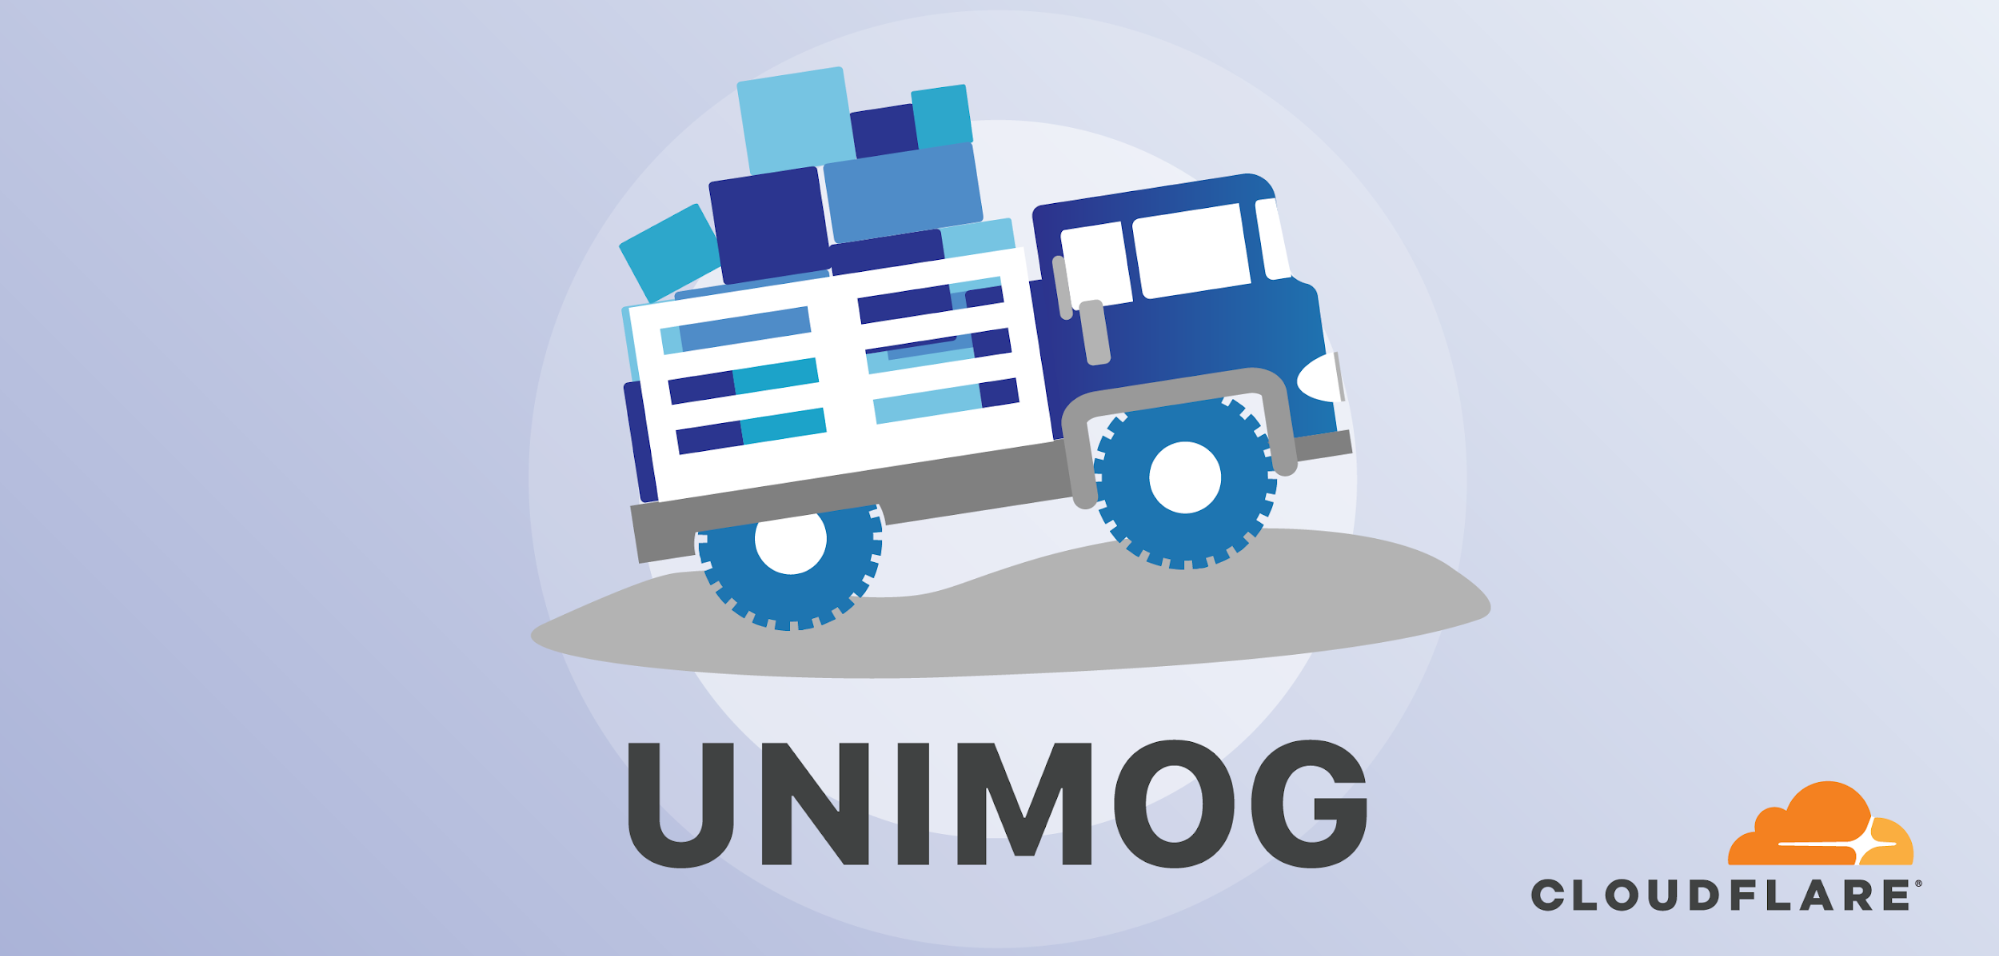 Unimog - Cloudflare's edge load balancer